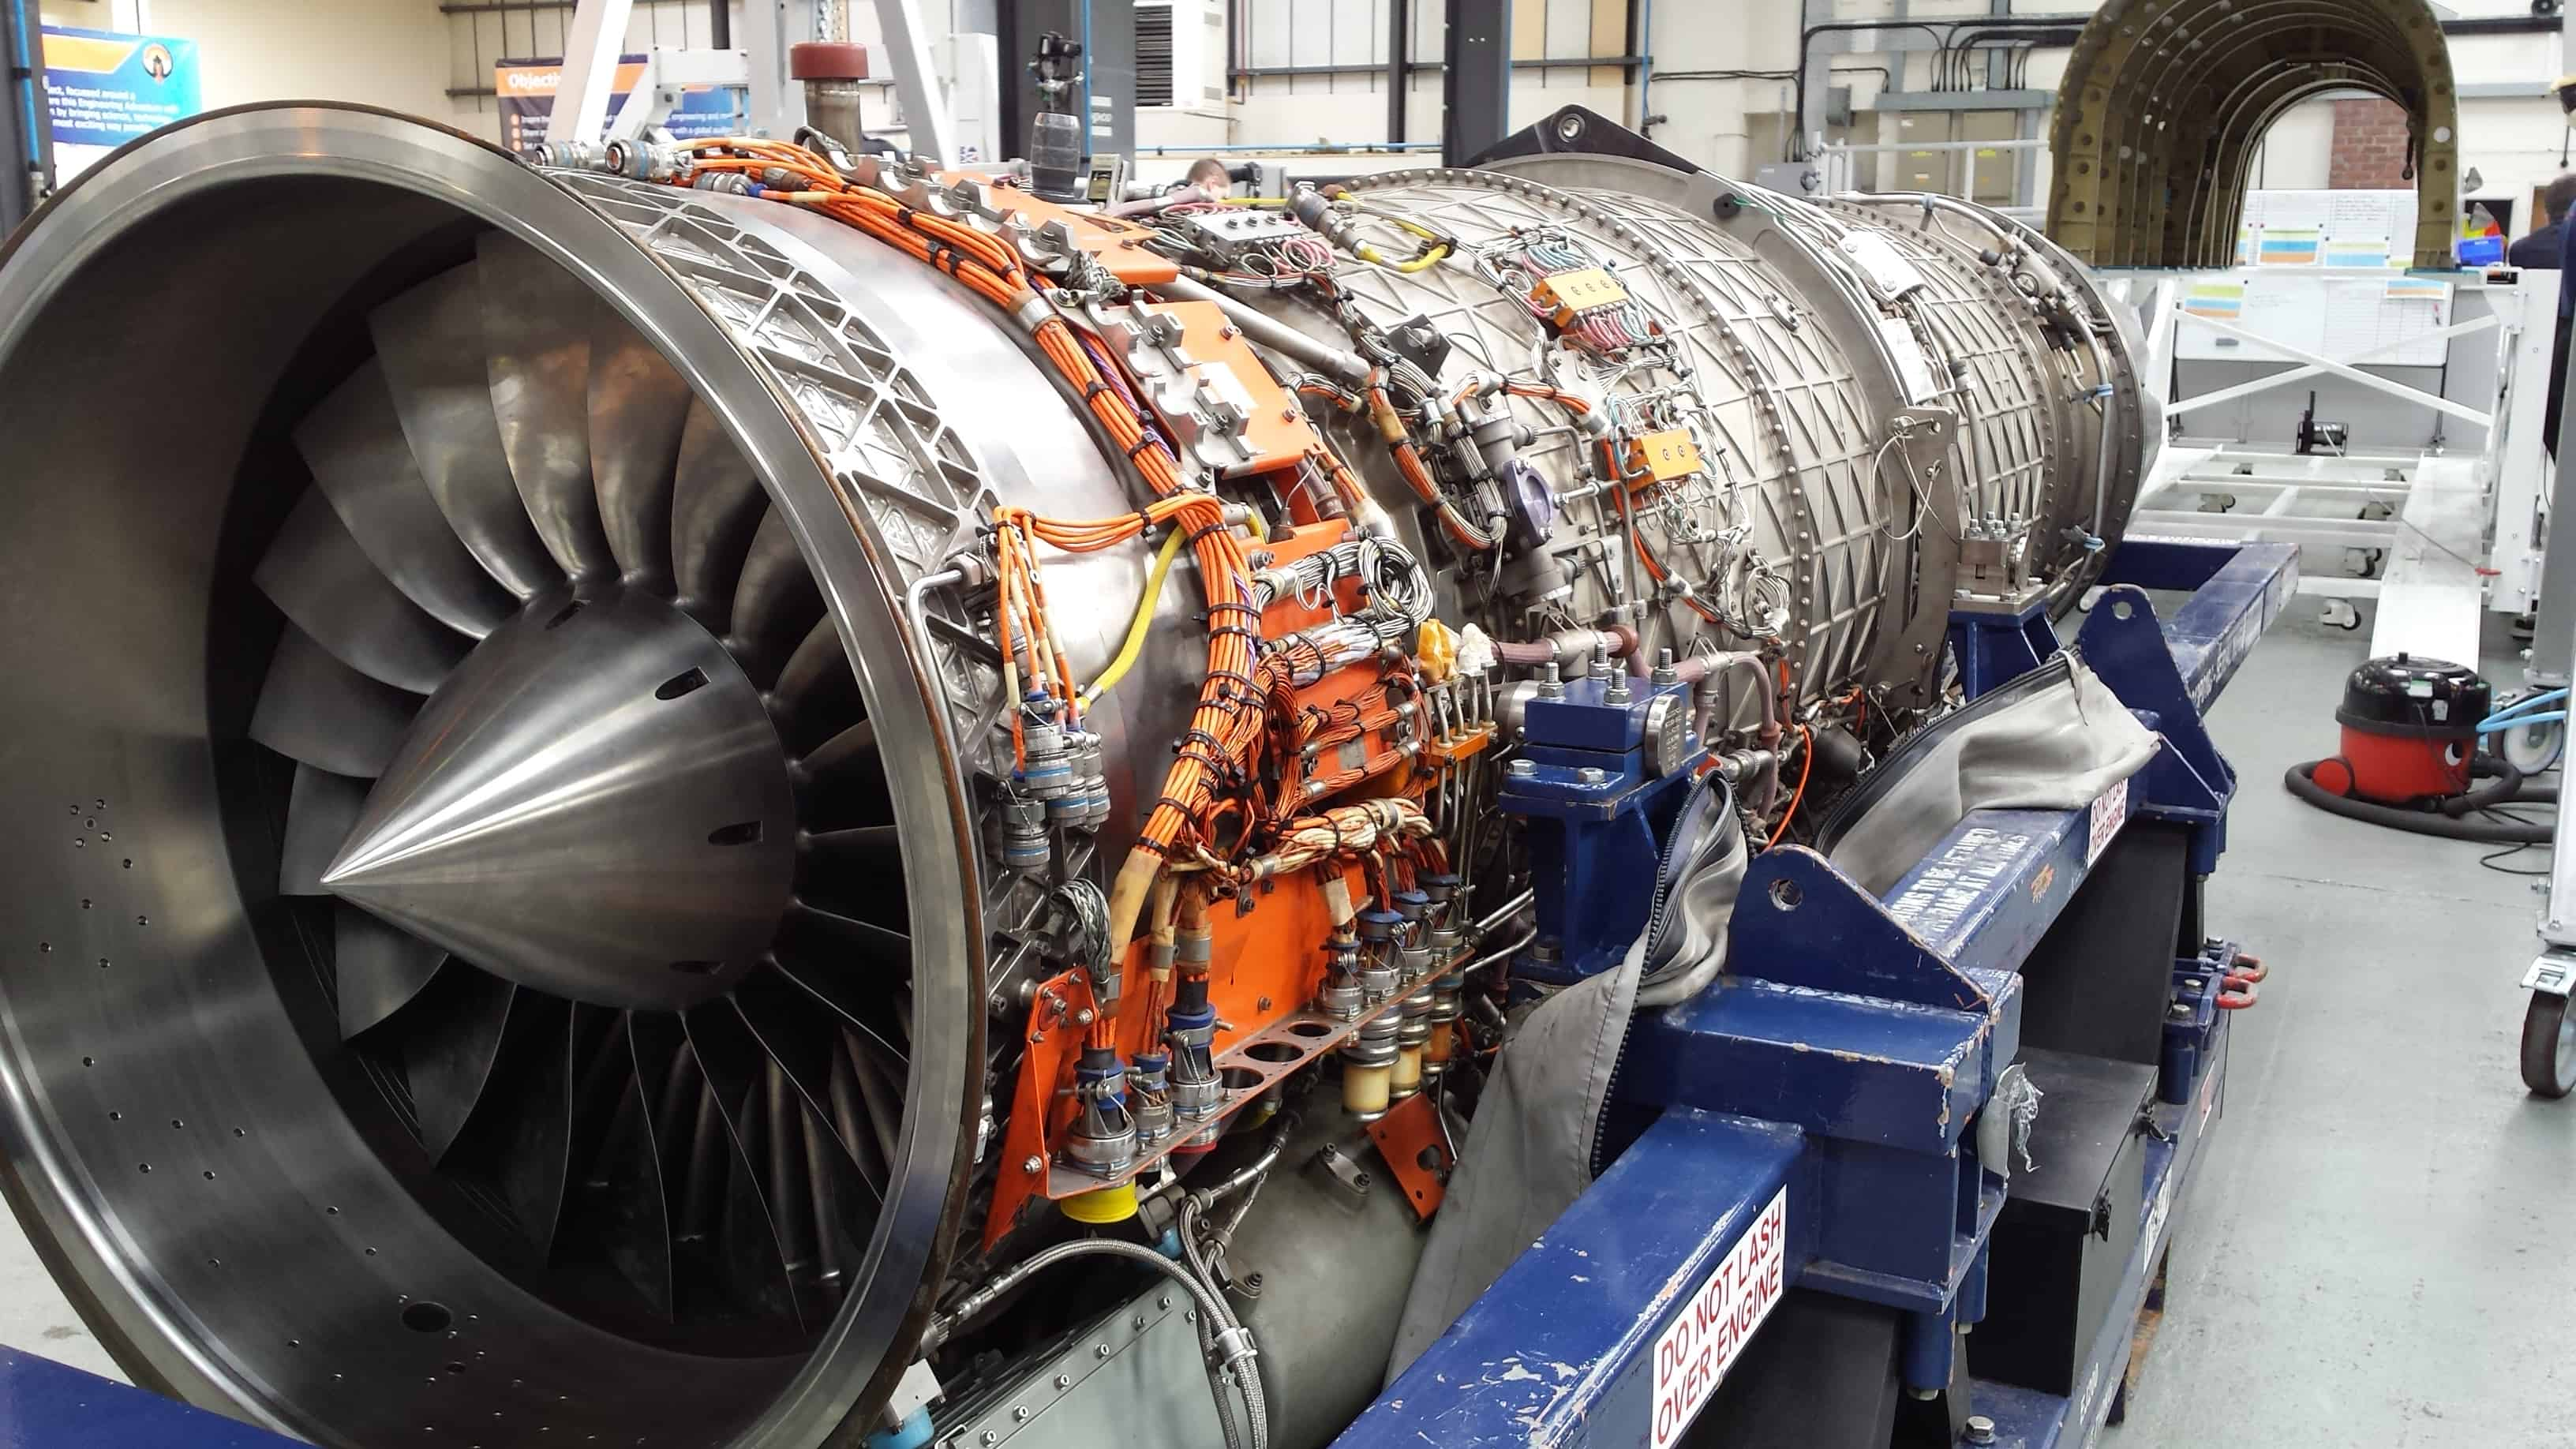 The engine of the BLOODHOUND Project's SuperSonic car being constructed